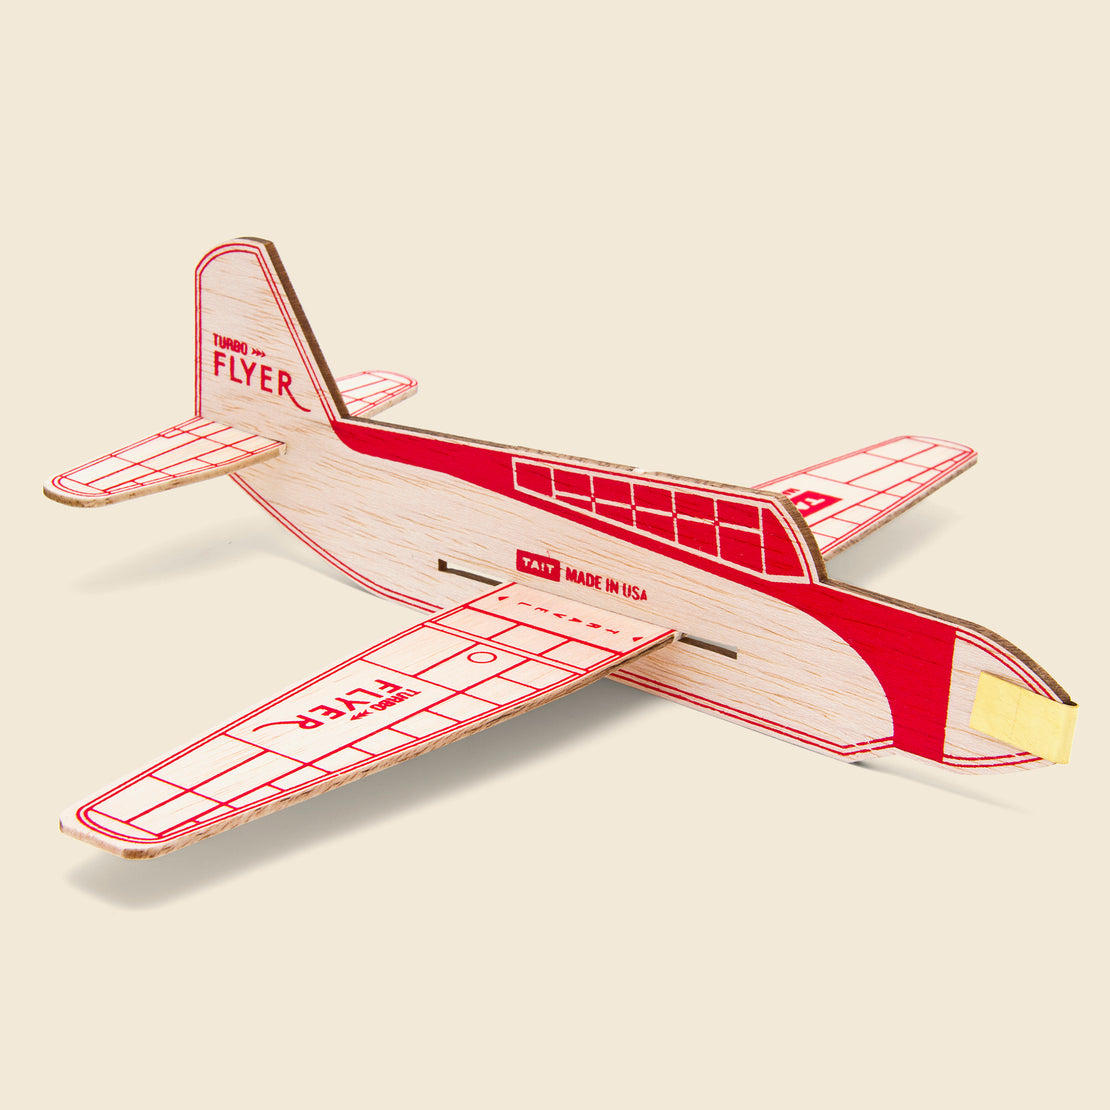 Home Turbo Flyer Balsa Airplane Kit - Red